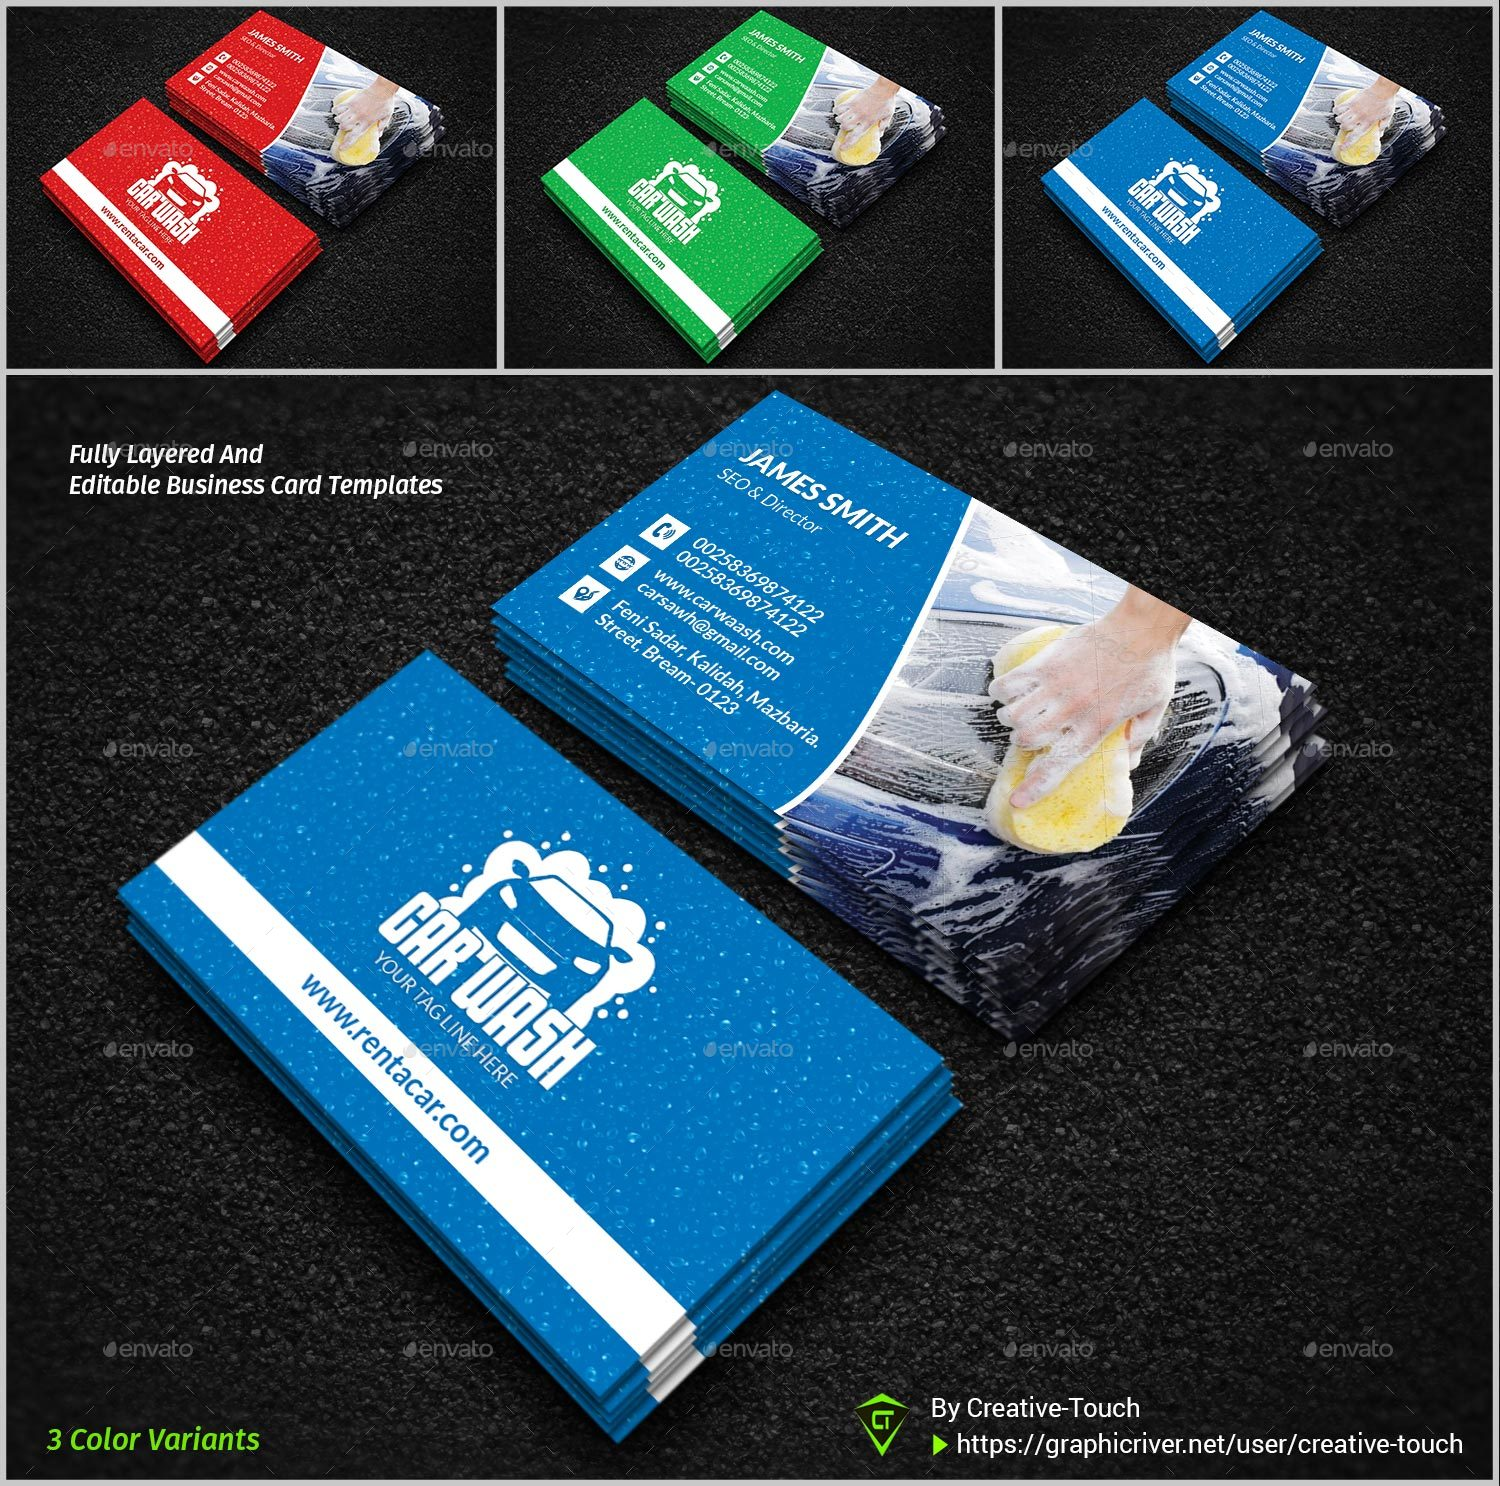 Car wash business cards choice image business card template word t mobile car wash business cards pardini creative reheart Choice Image